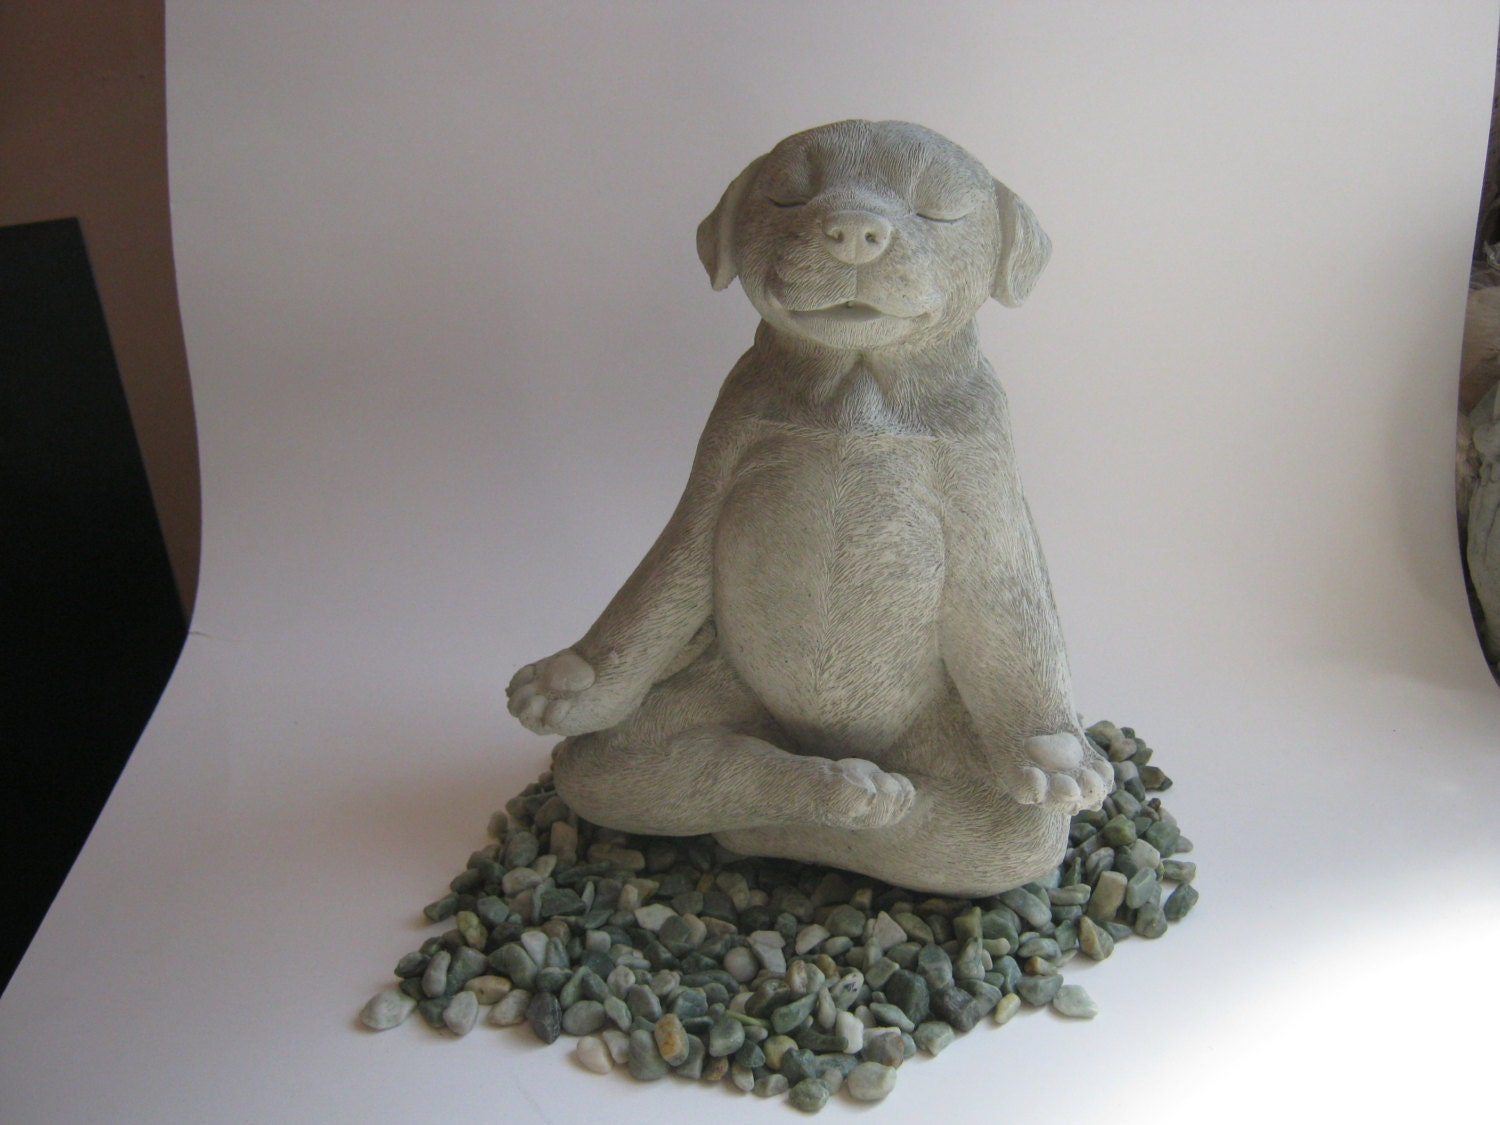 dog statue buddha dog meditating dog statue zen cement. Black Bedroom Furniture Sets. Home Design Ideas